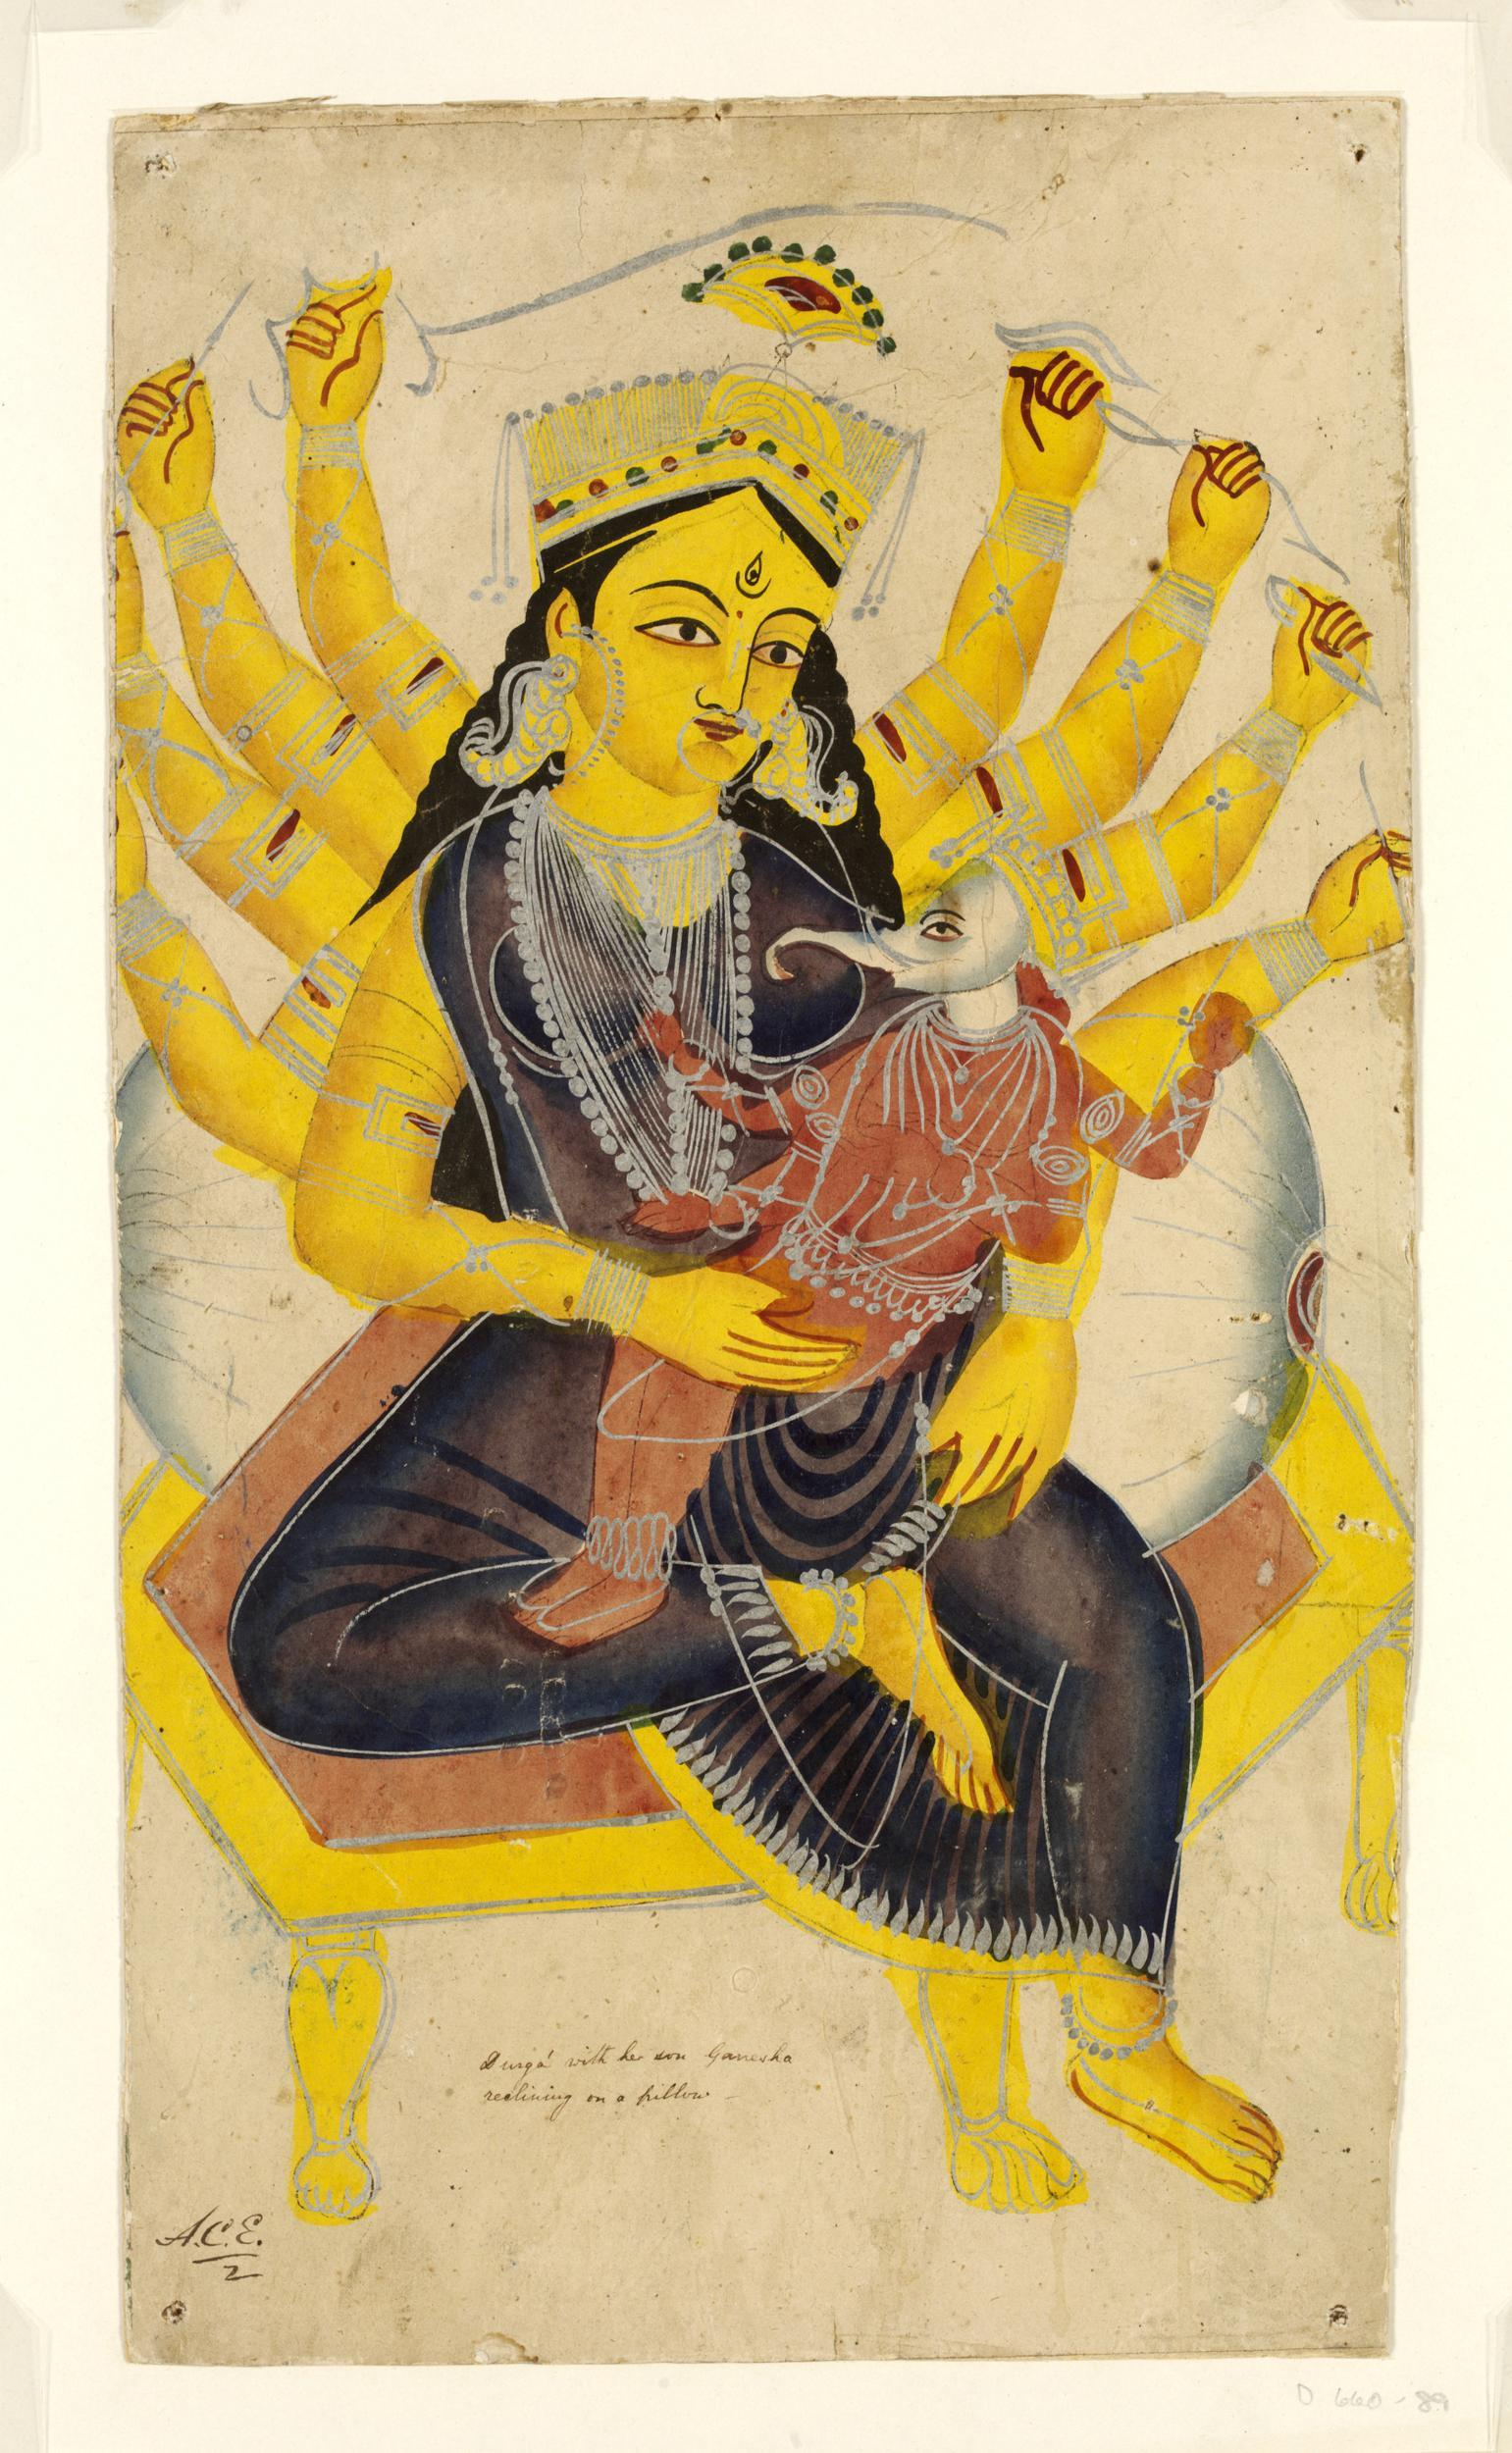 Durga holding Genesha in her Lap - Kalighat Painting, Calcutta (Kolkata), c1850